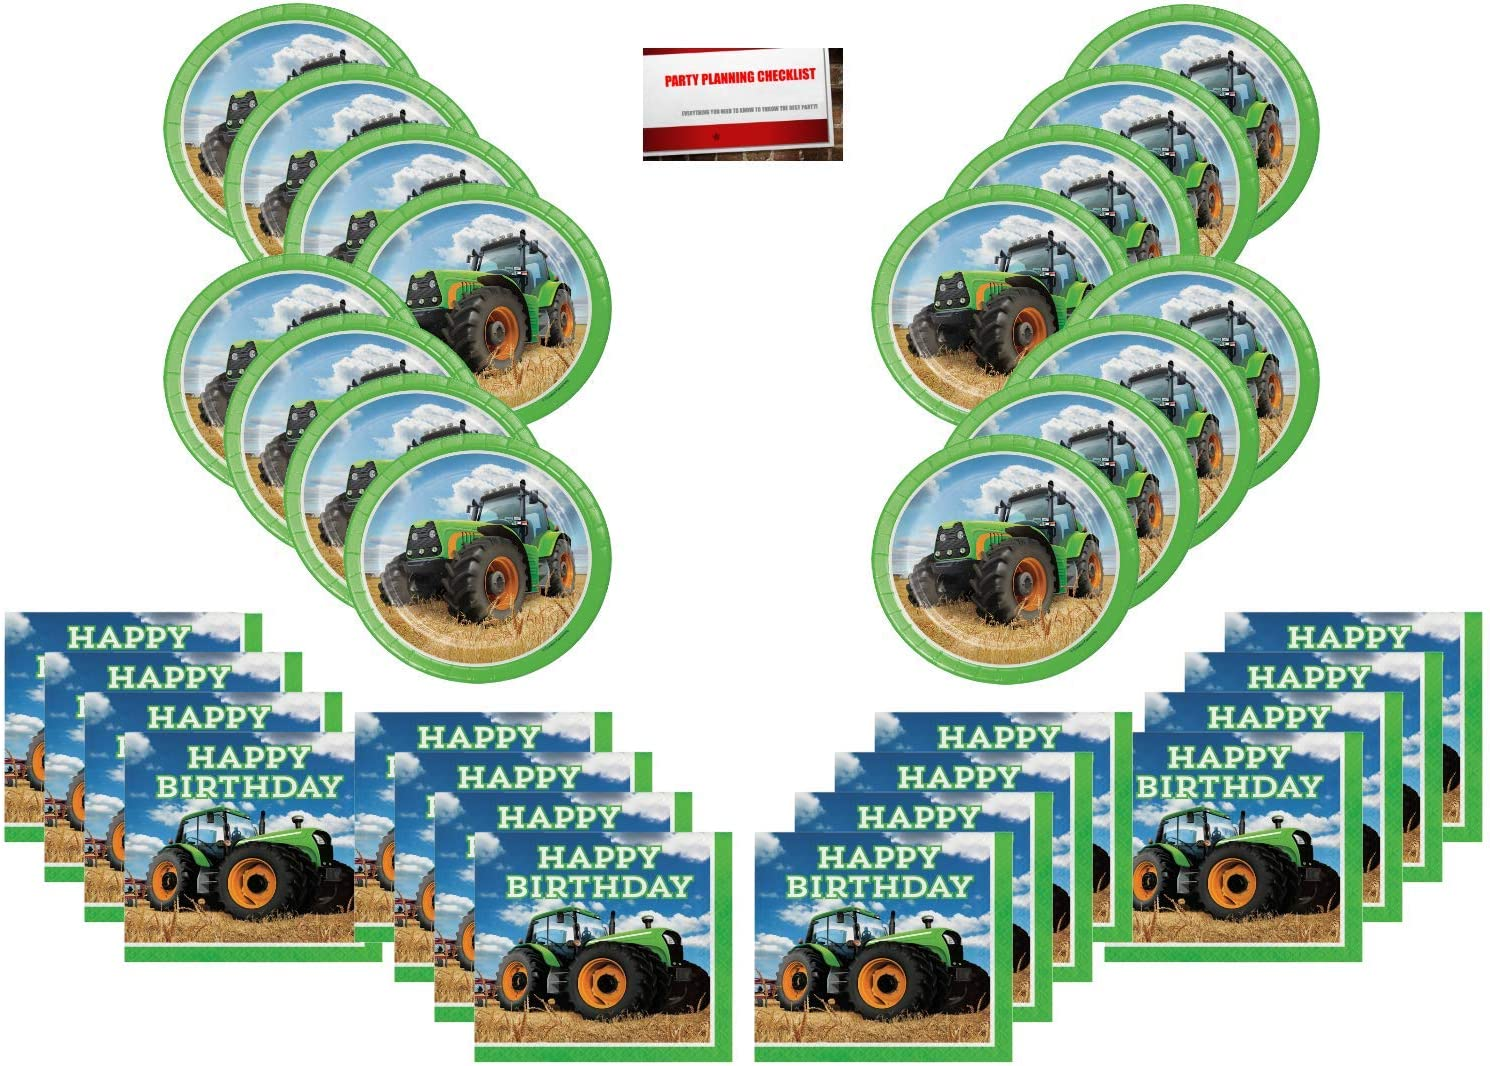 Tractor Time Party Supplies Bundle Pack for 16 Guests (Plus Party Planning Checklist By Mikes Super Store)